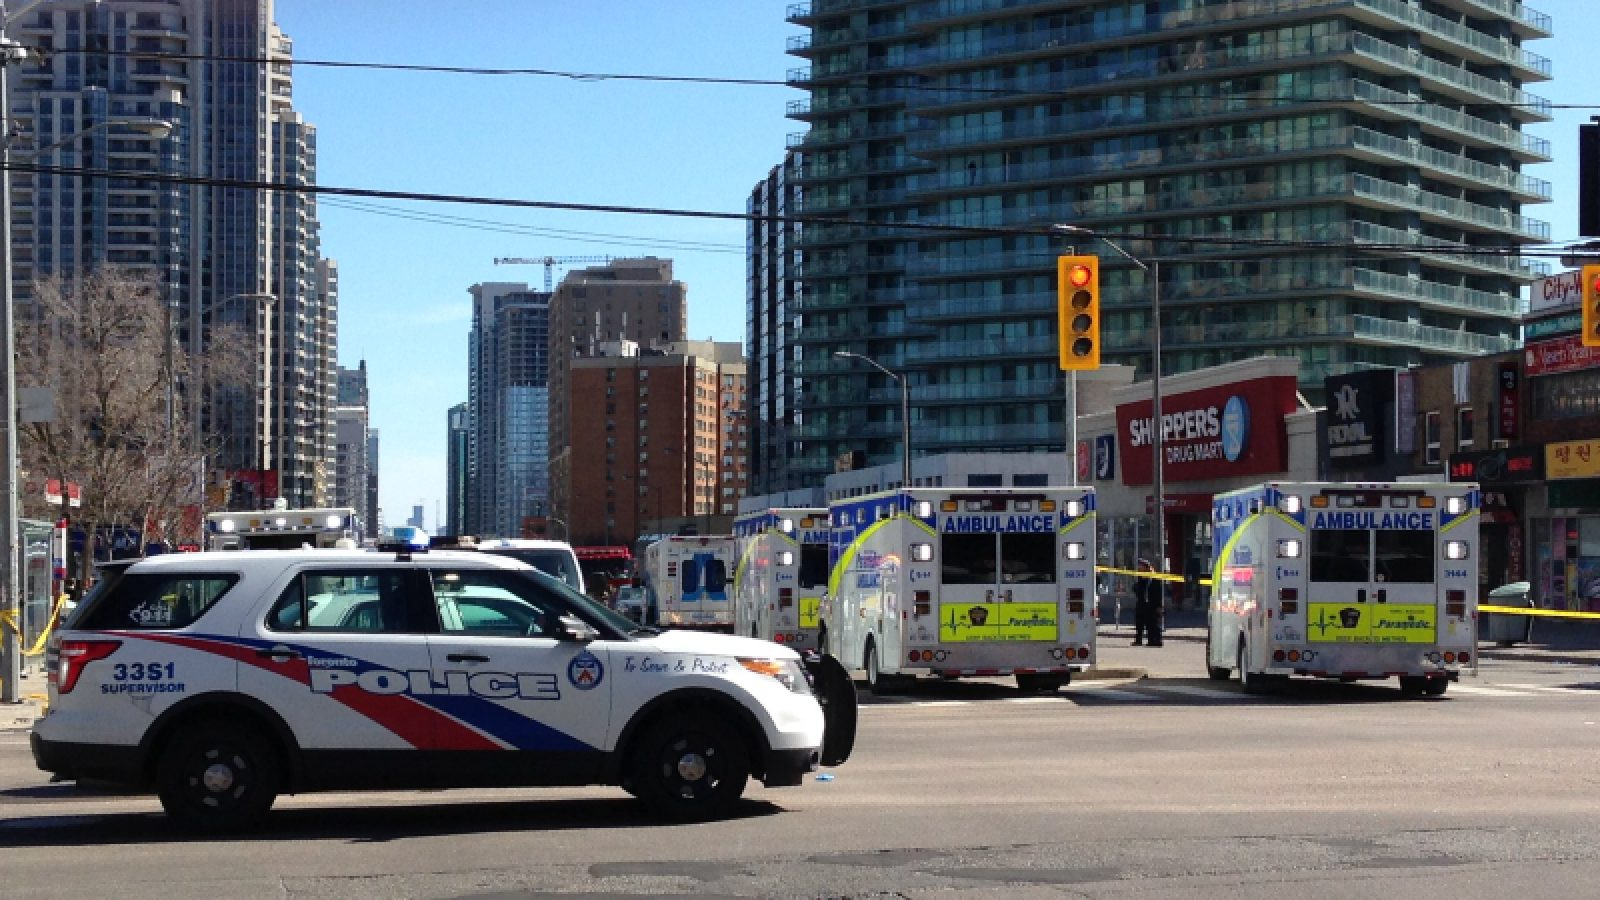 Police and paramedics respond to a truck ramming attack in Toronto, Canada